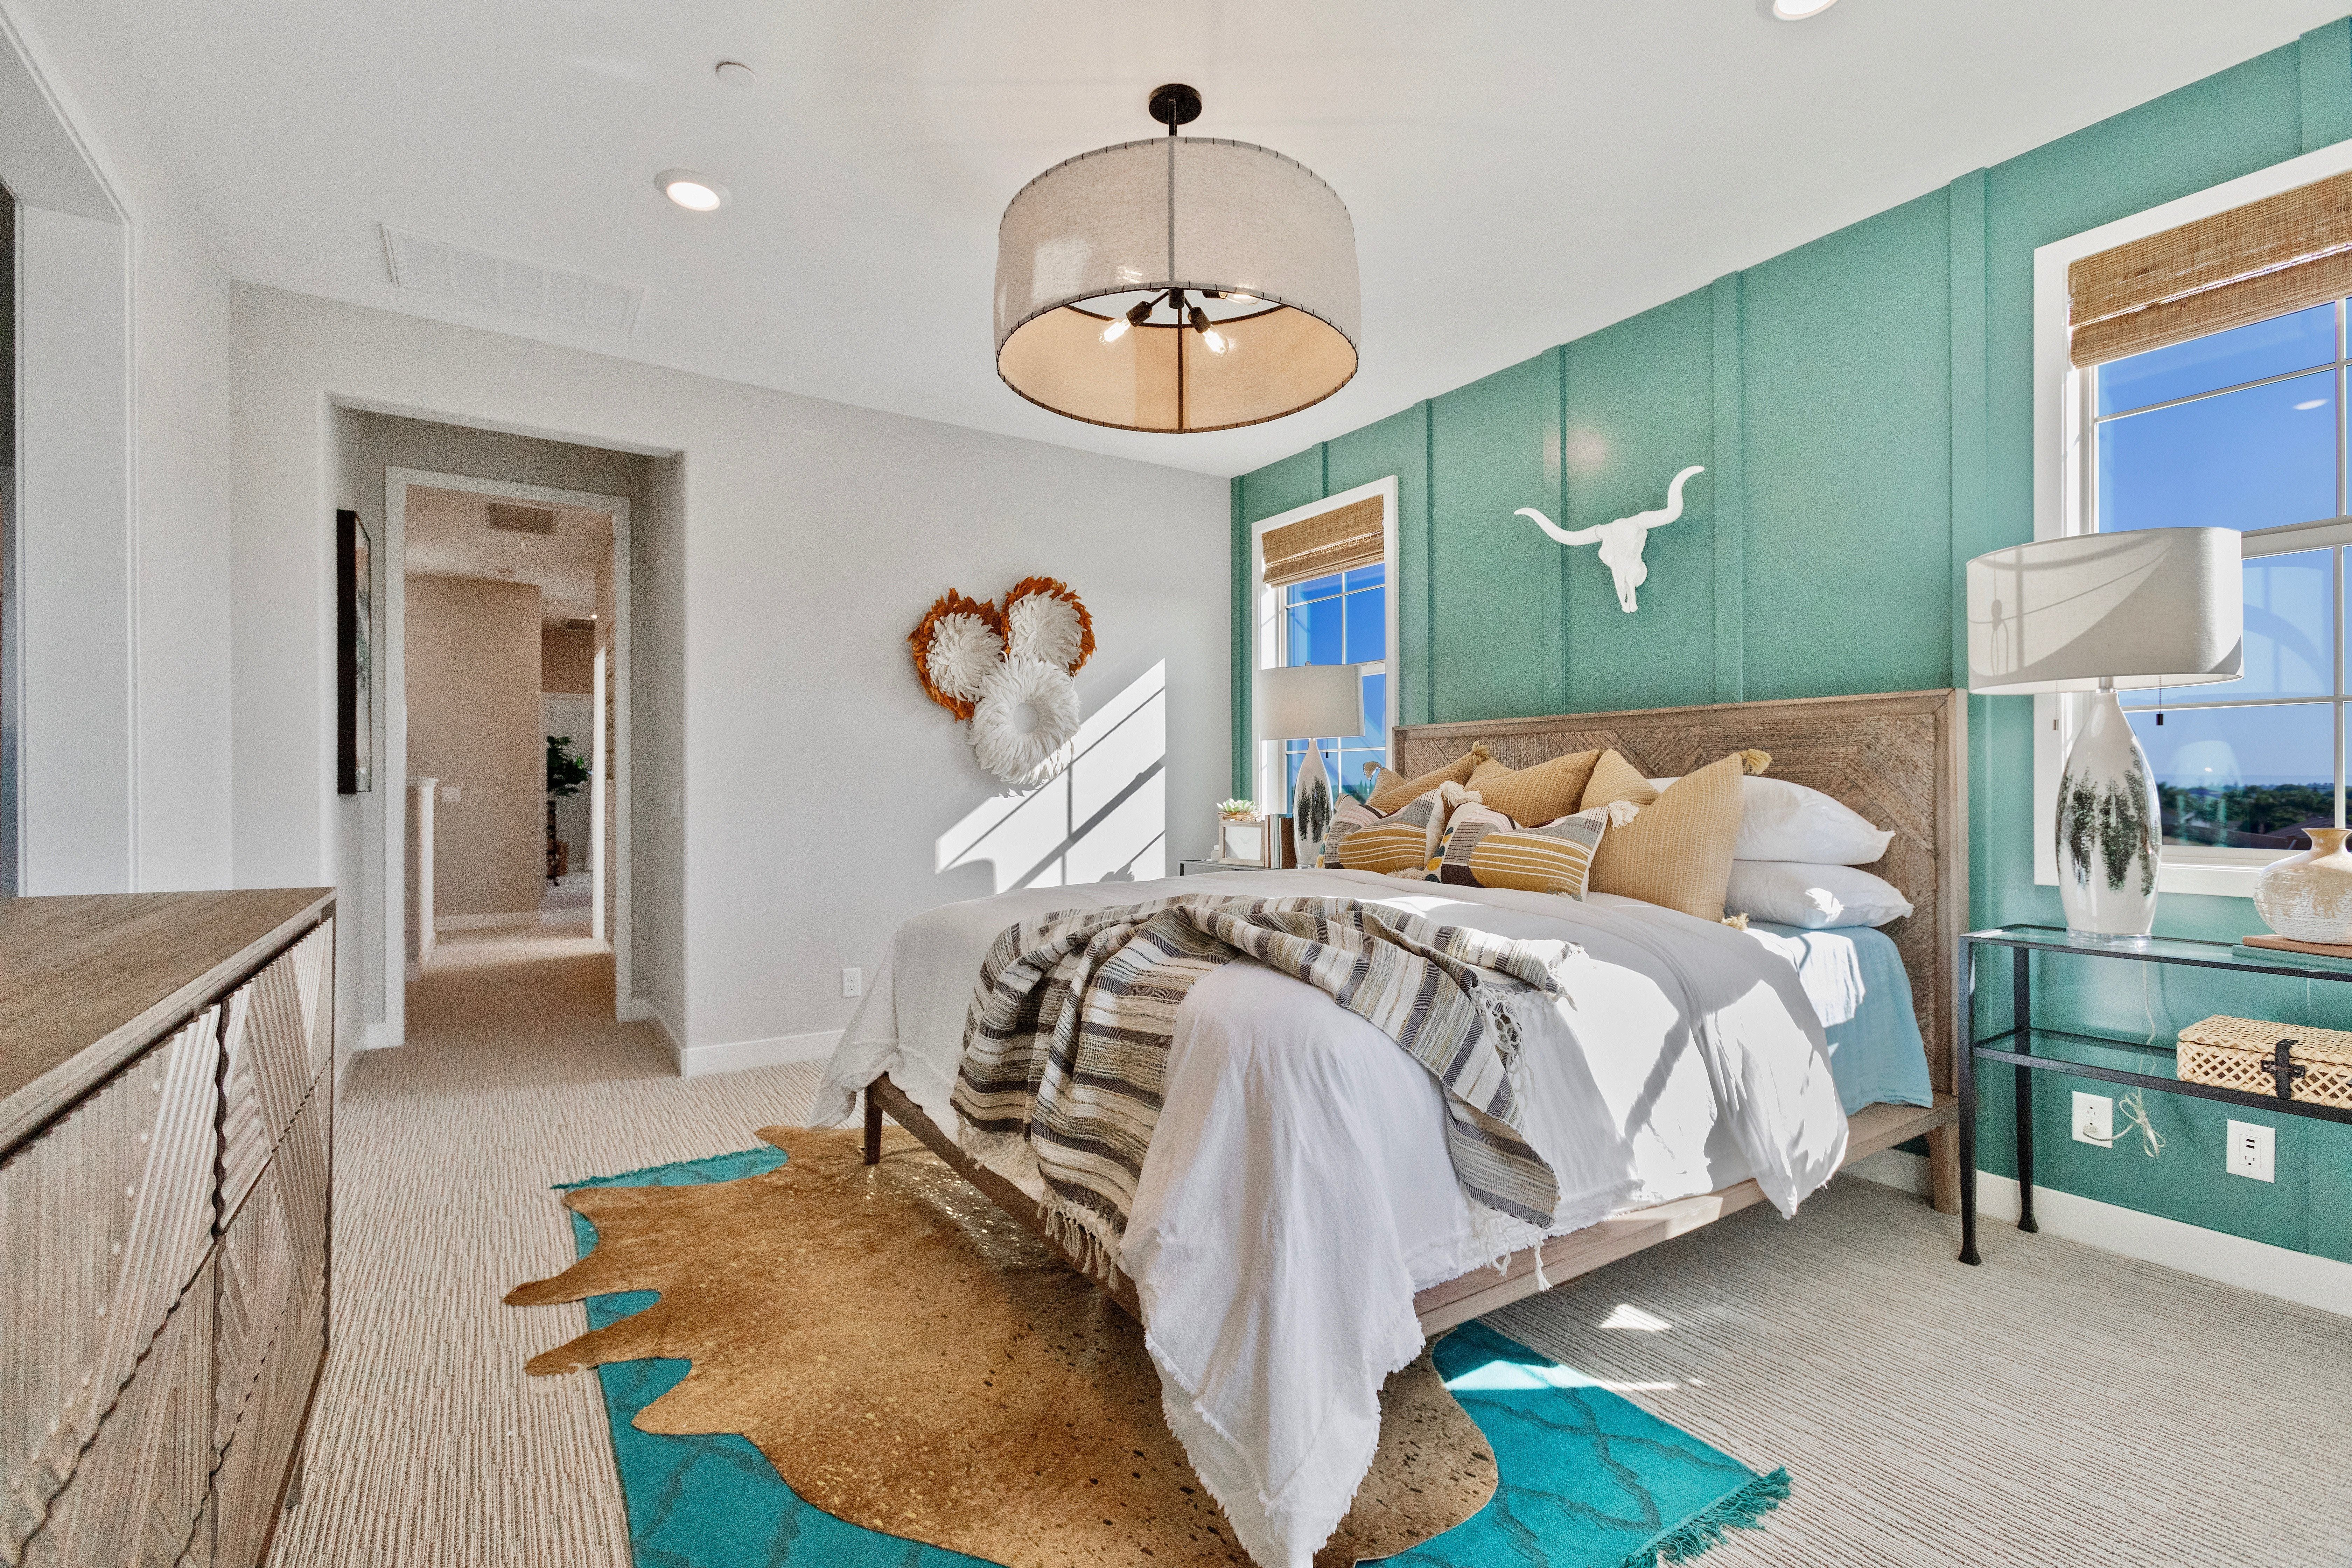 Bedroom featured in the Residence 3 By Lennar in Los Angeles, CA